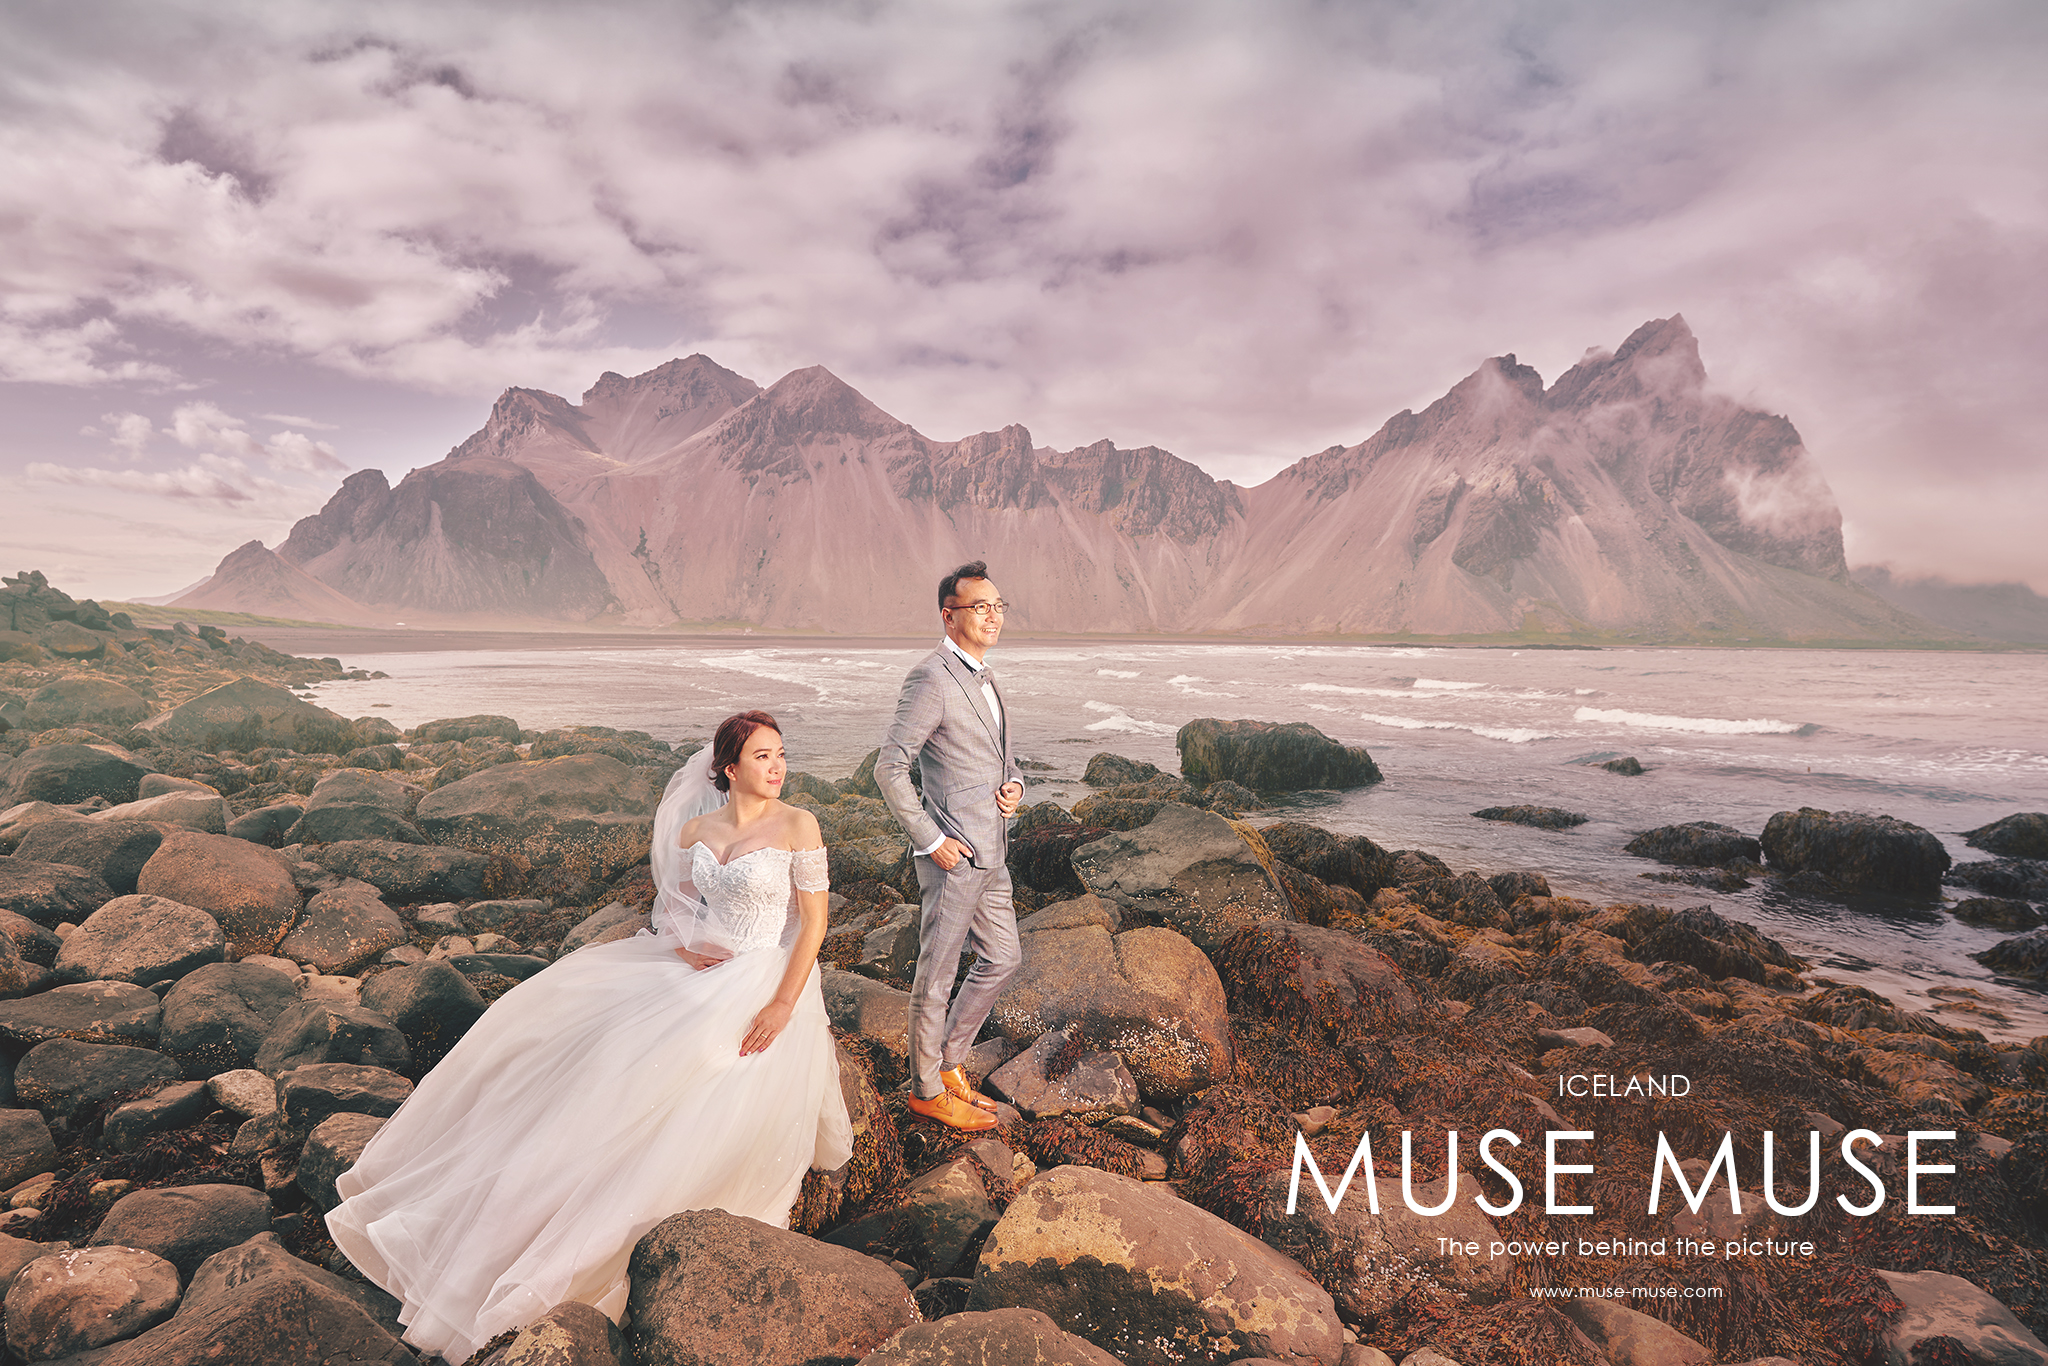 Muse blog Updated 26 July 2019 Peggy & Stanley 冰島婚紗攝影 Iceland Post-Wedding